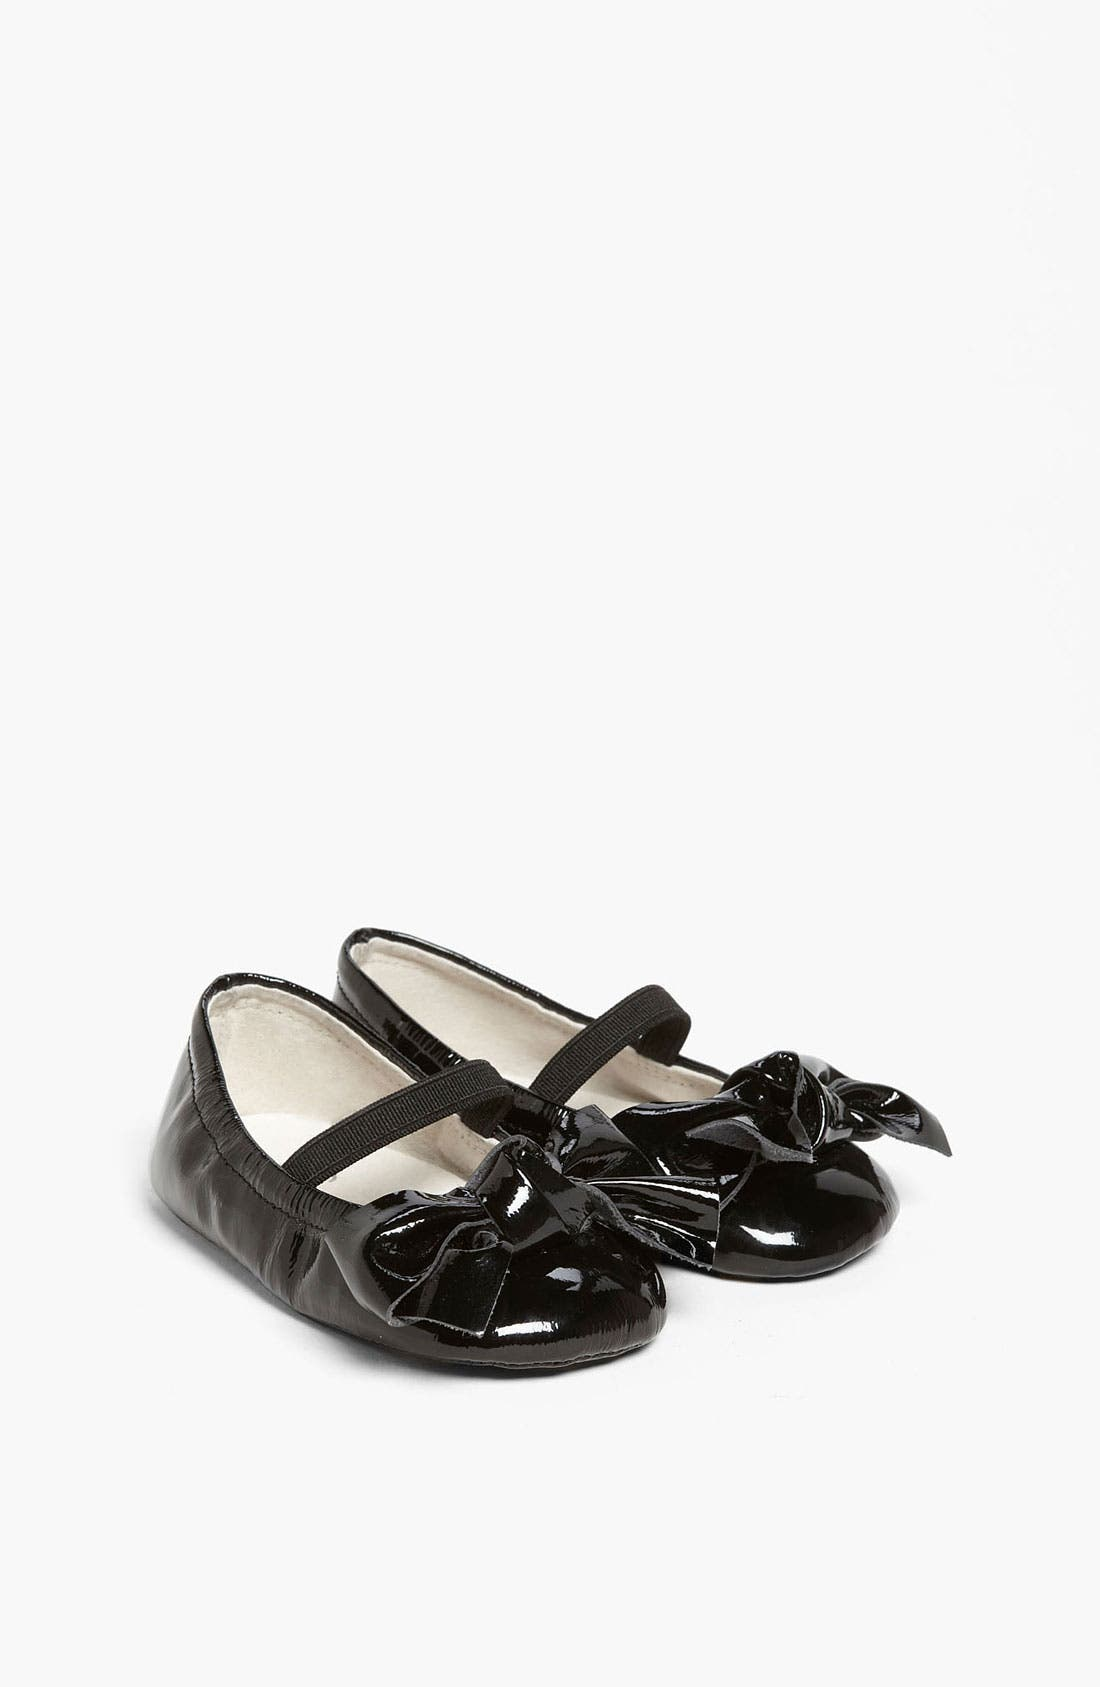 Alternate Image 1 Selected - Nordstrom Baby 'Miranda' Flat (Baby)